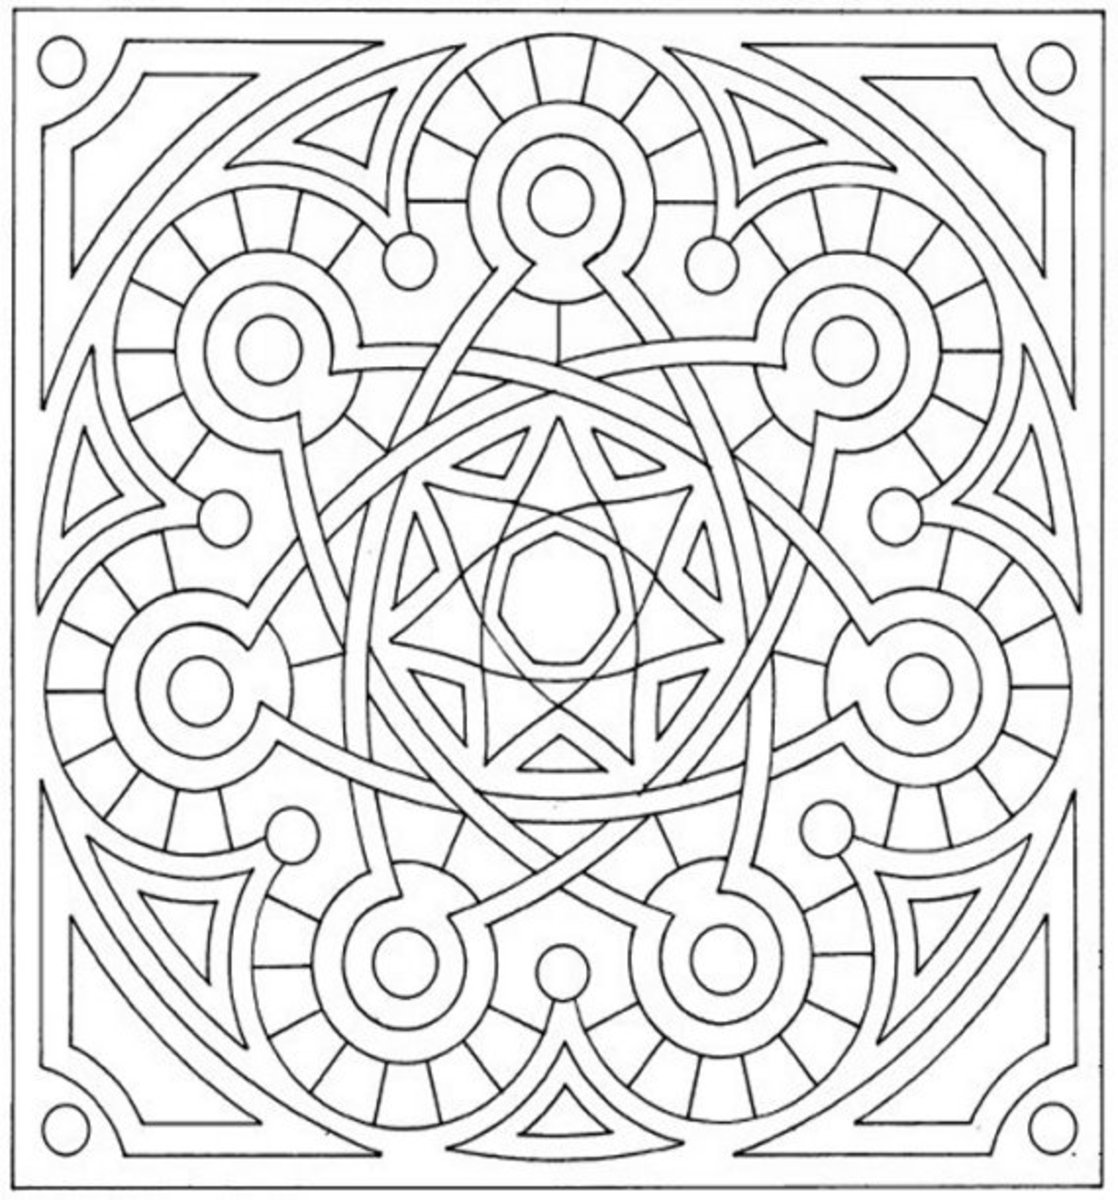 Mandala Pattern A3 - Colouring Pictures to print-and-color online.